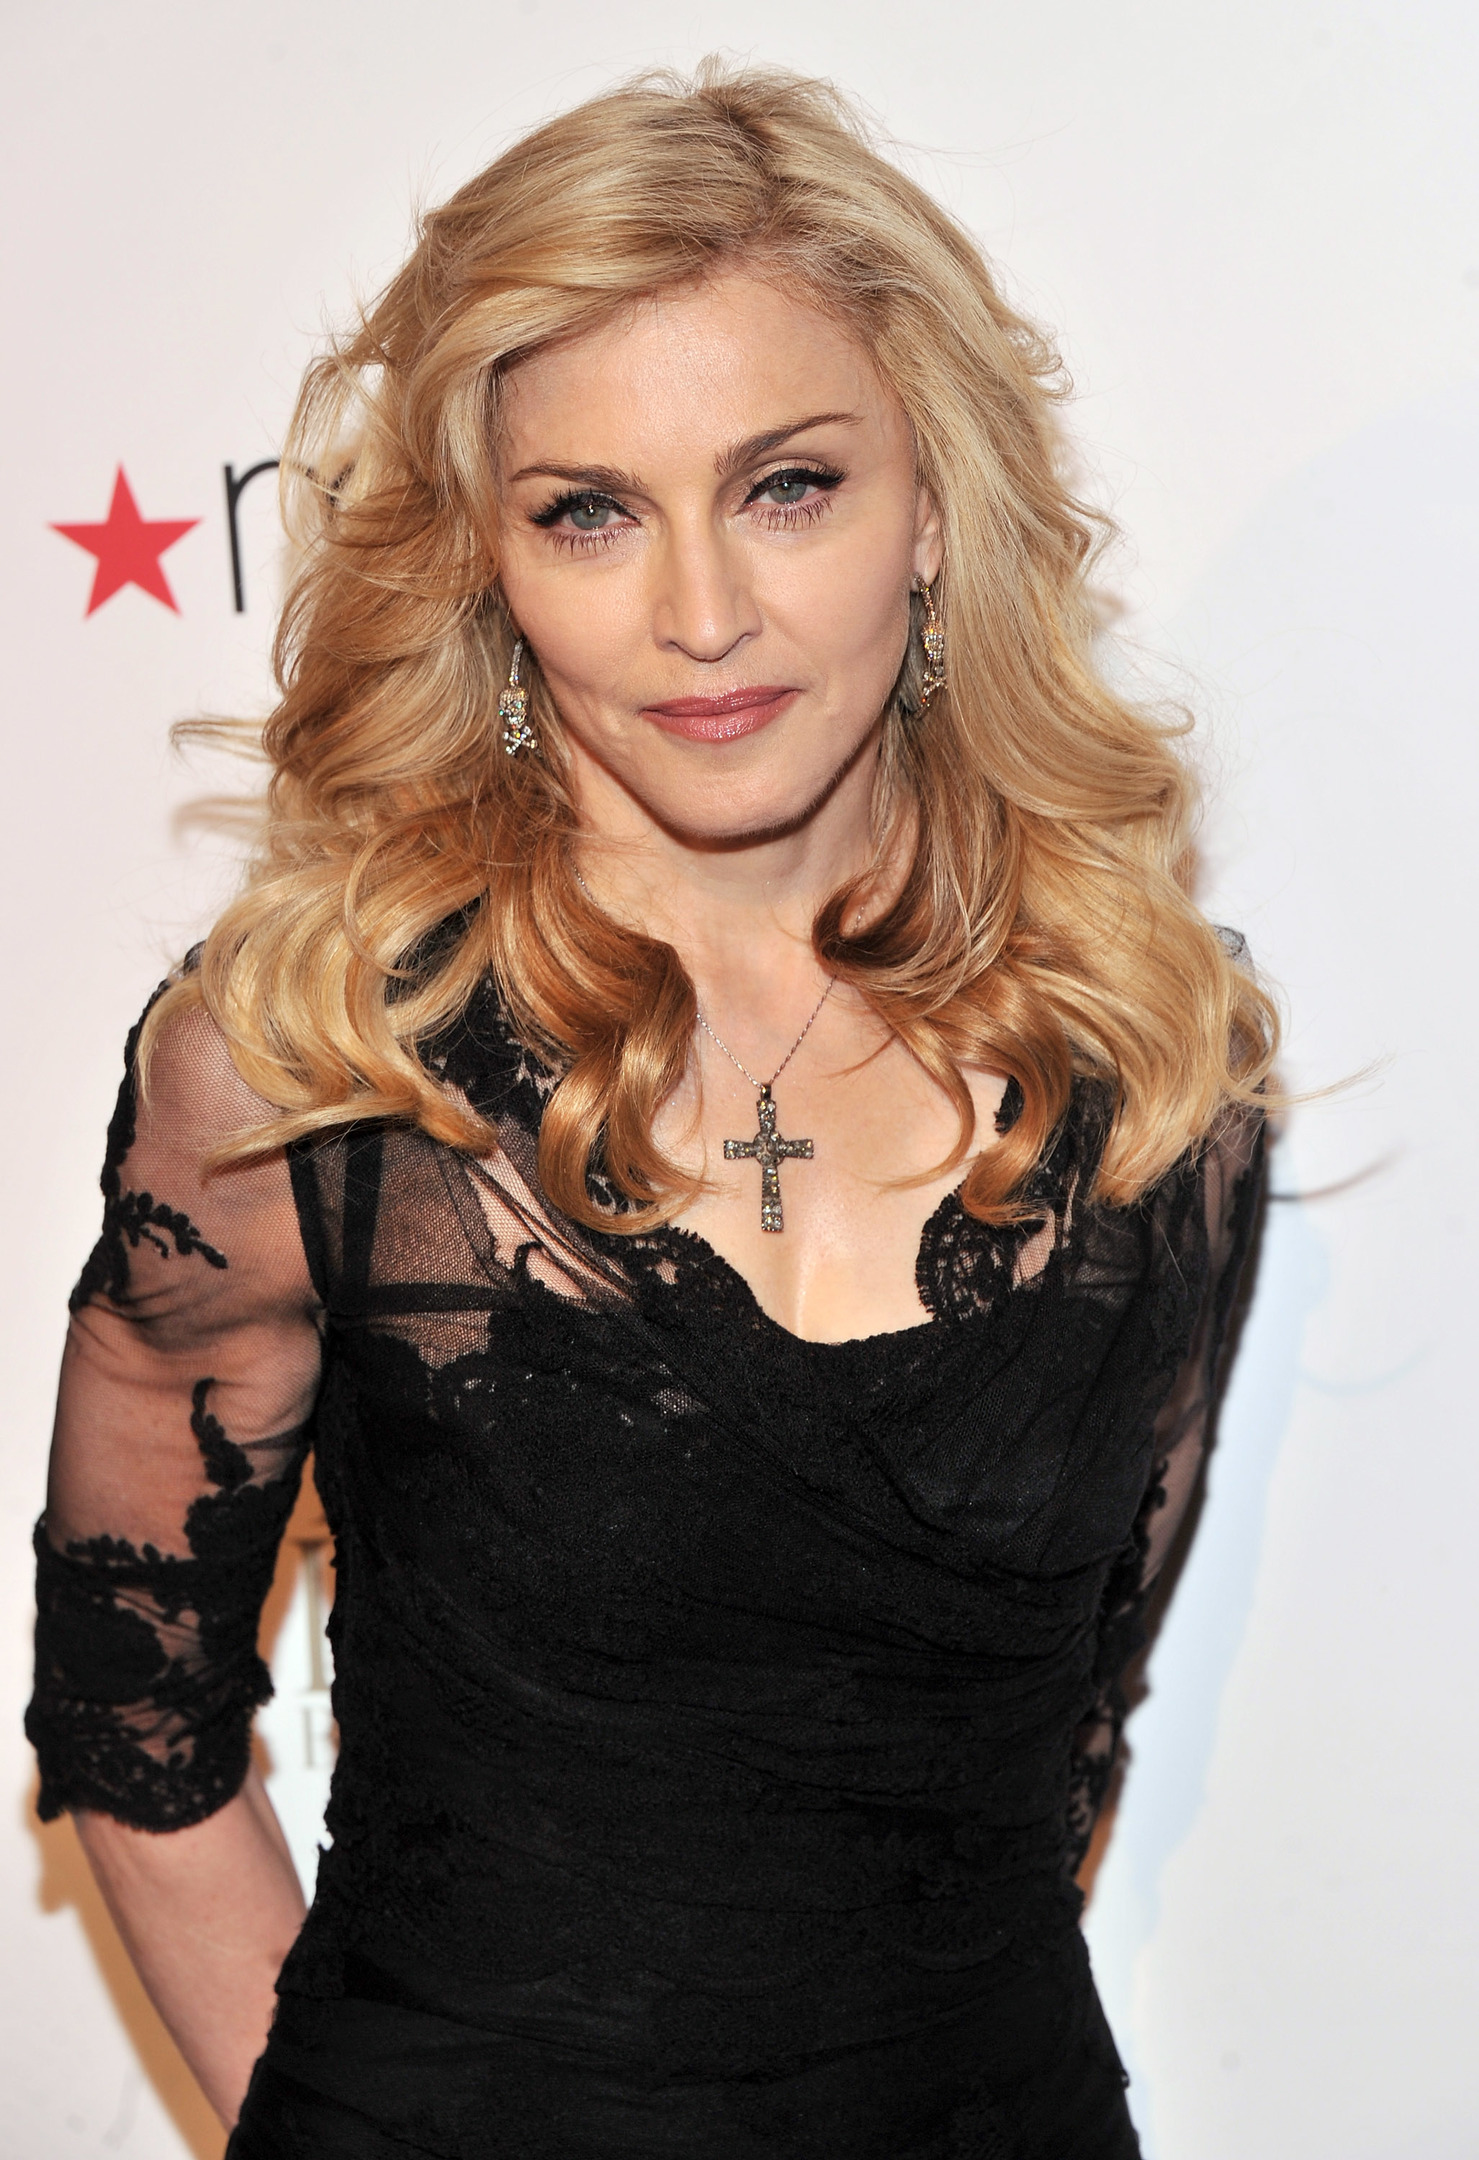 Madonna (Photo by Stephen Lovekin/Getty Images)